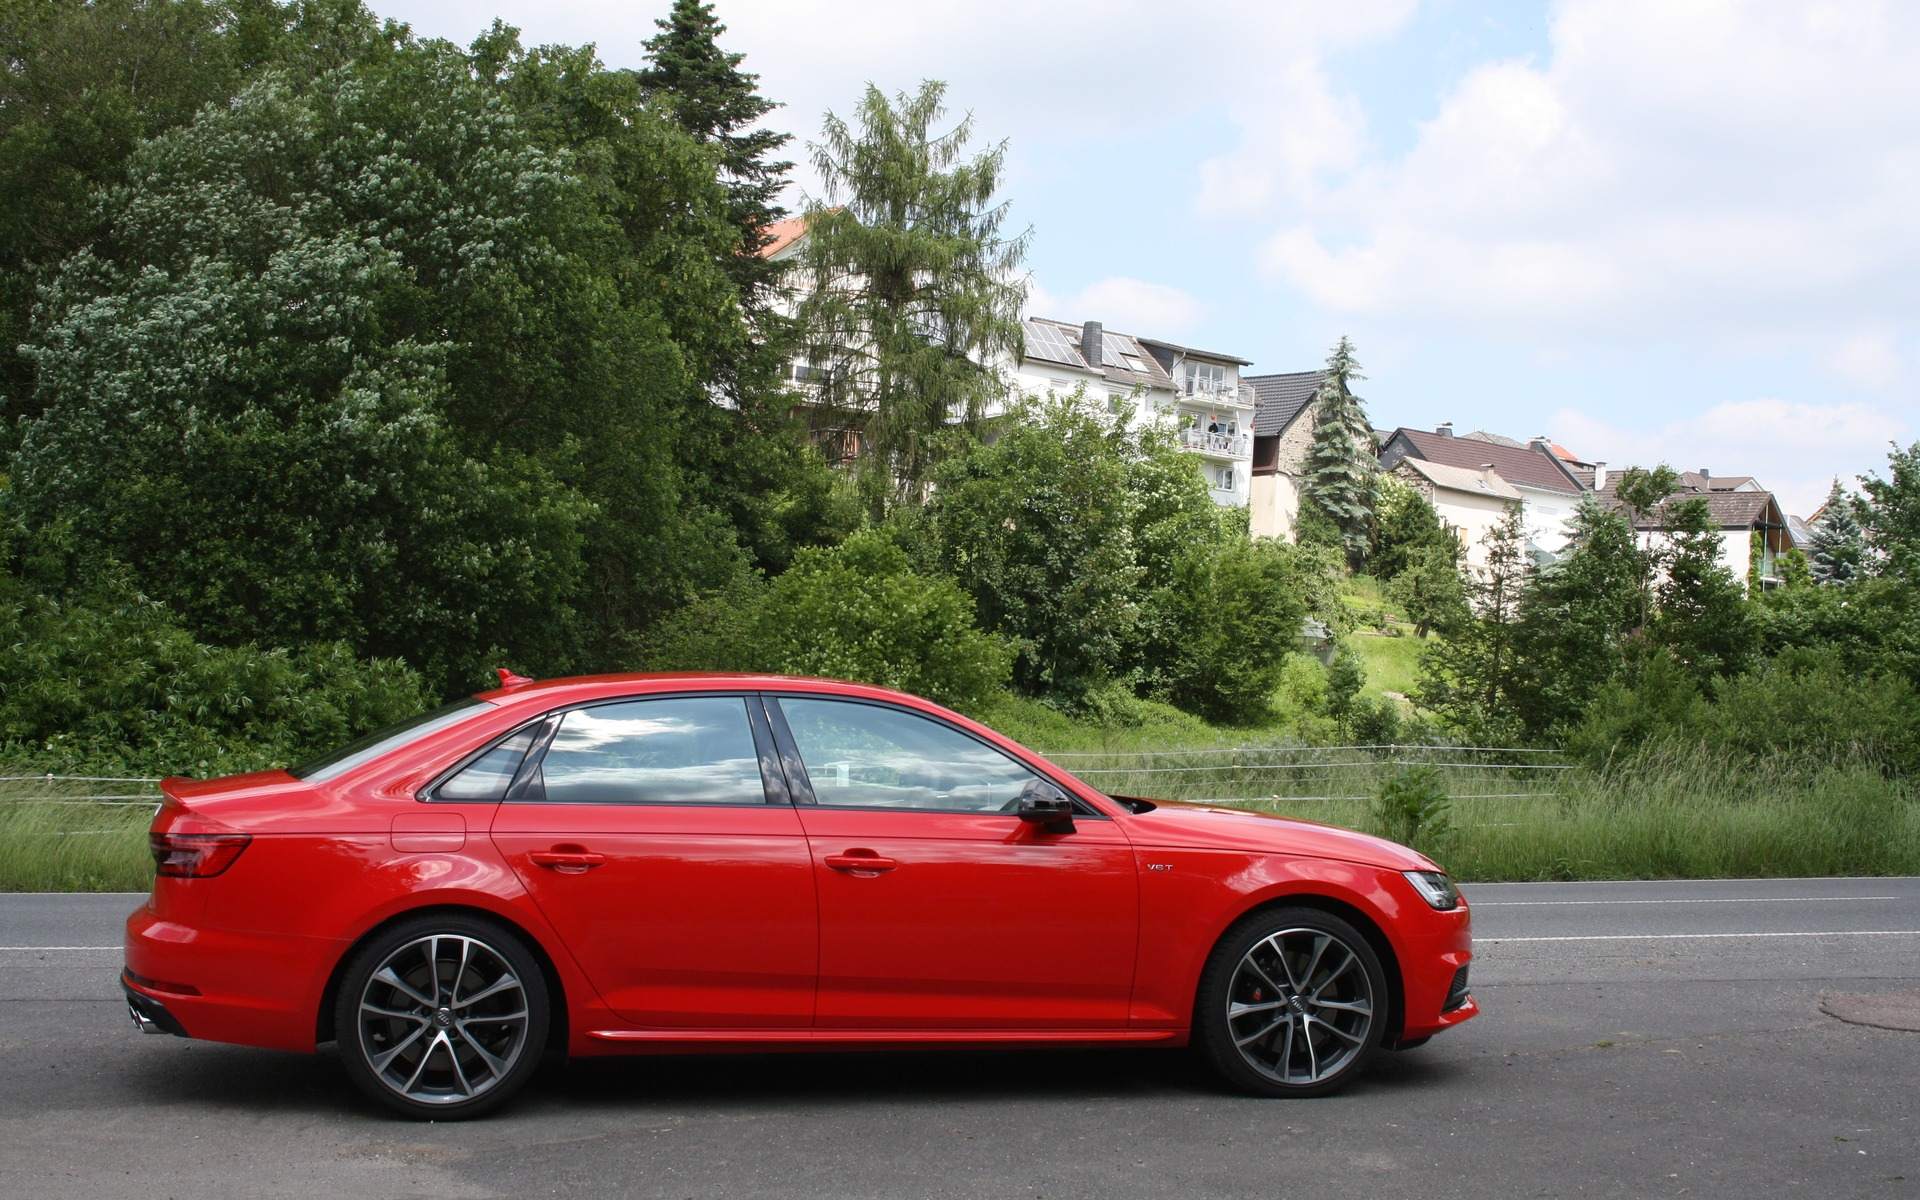 2018 Audi S4 The Docile Beast 16 17